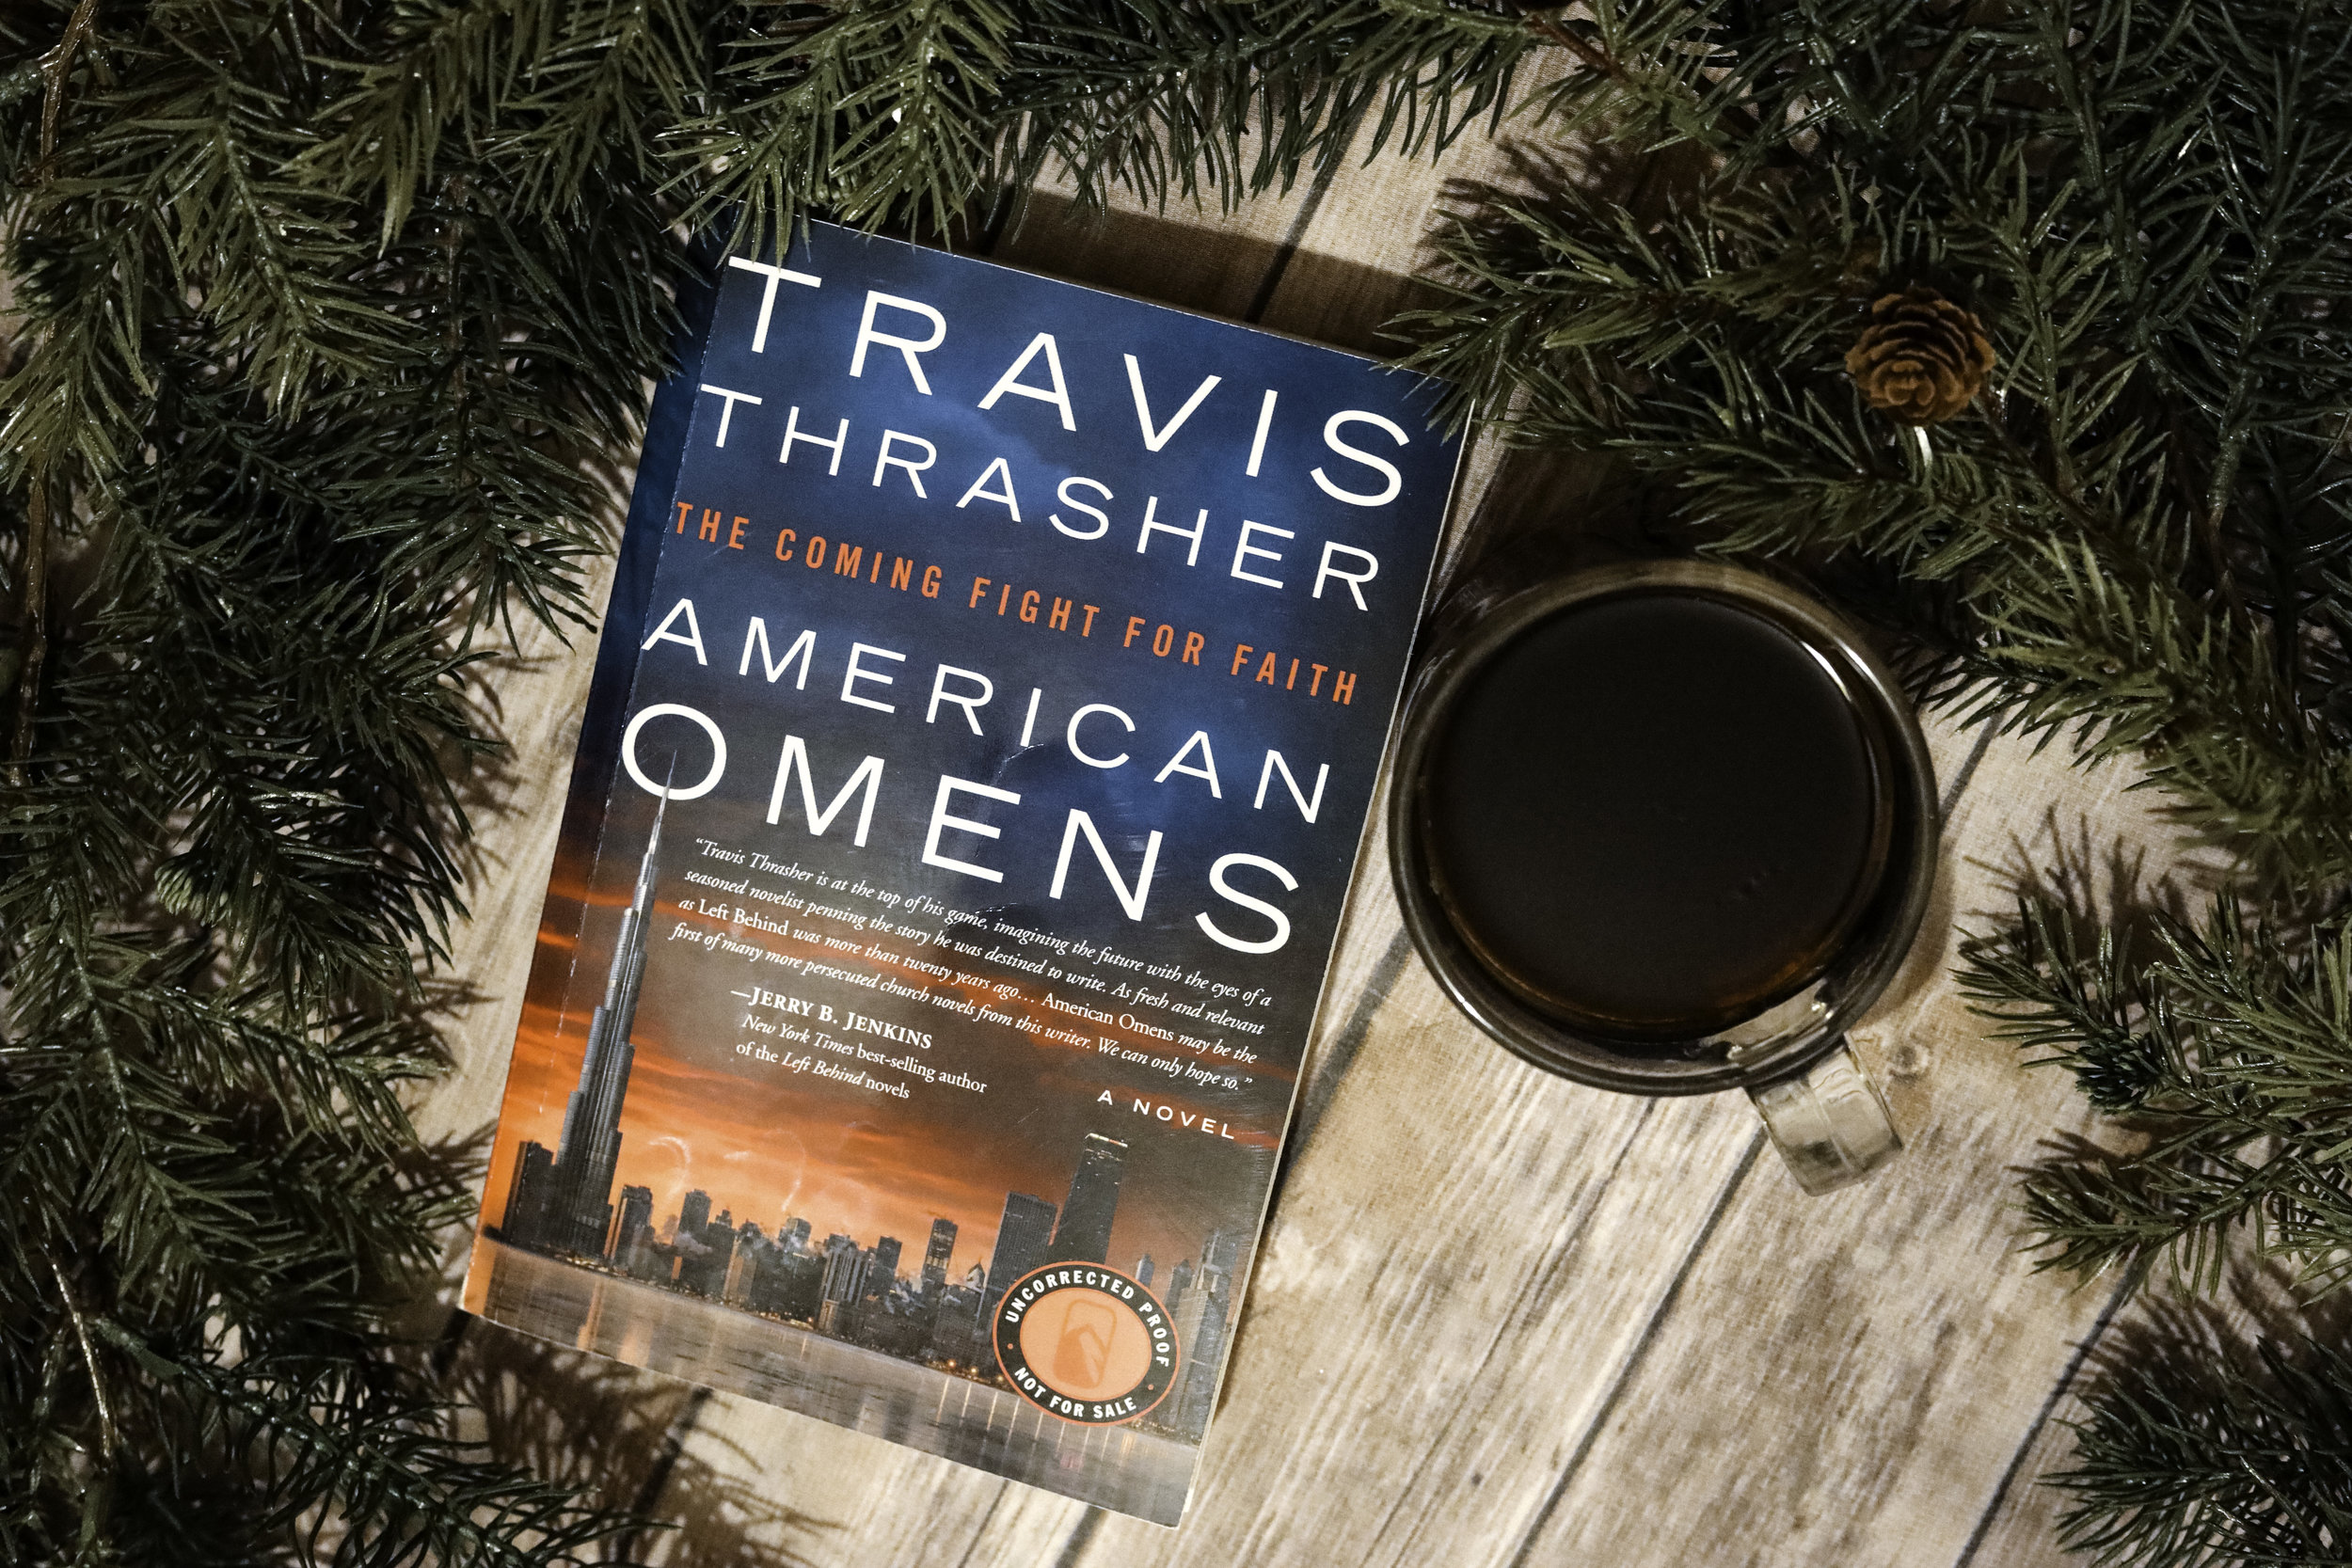 american omens by travis thrasher book review